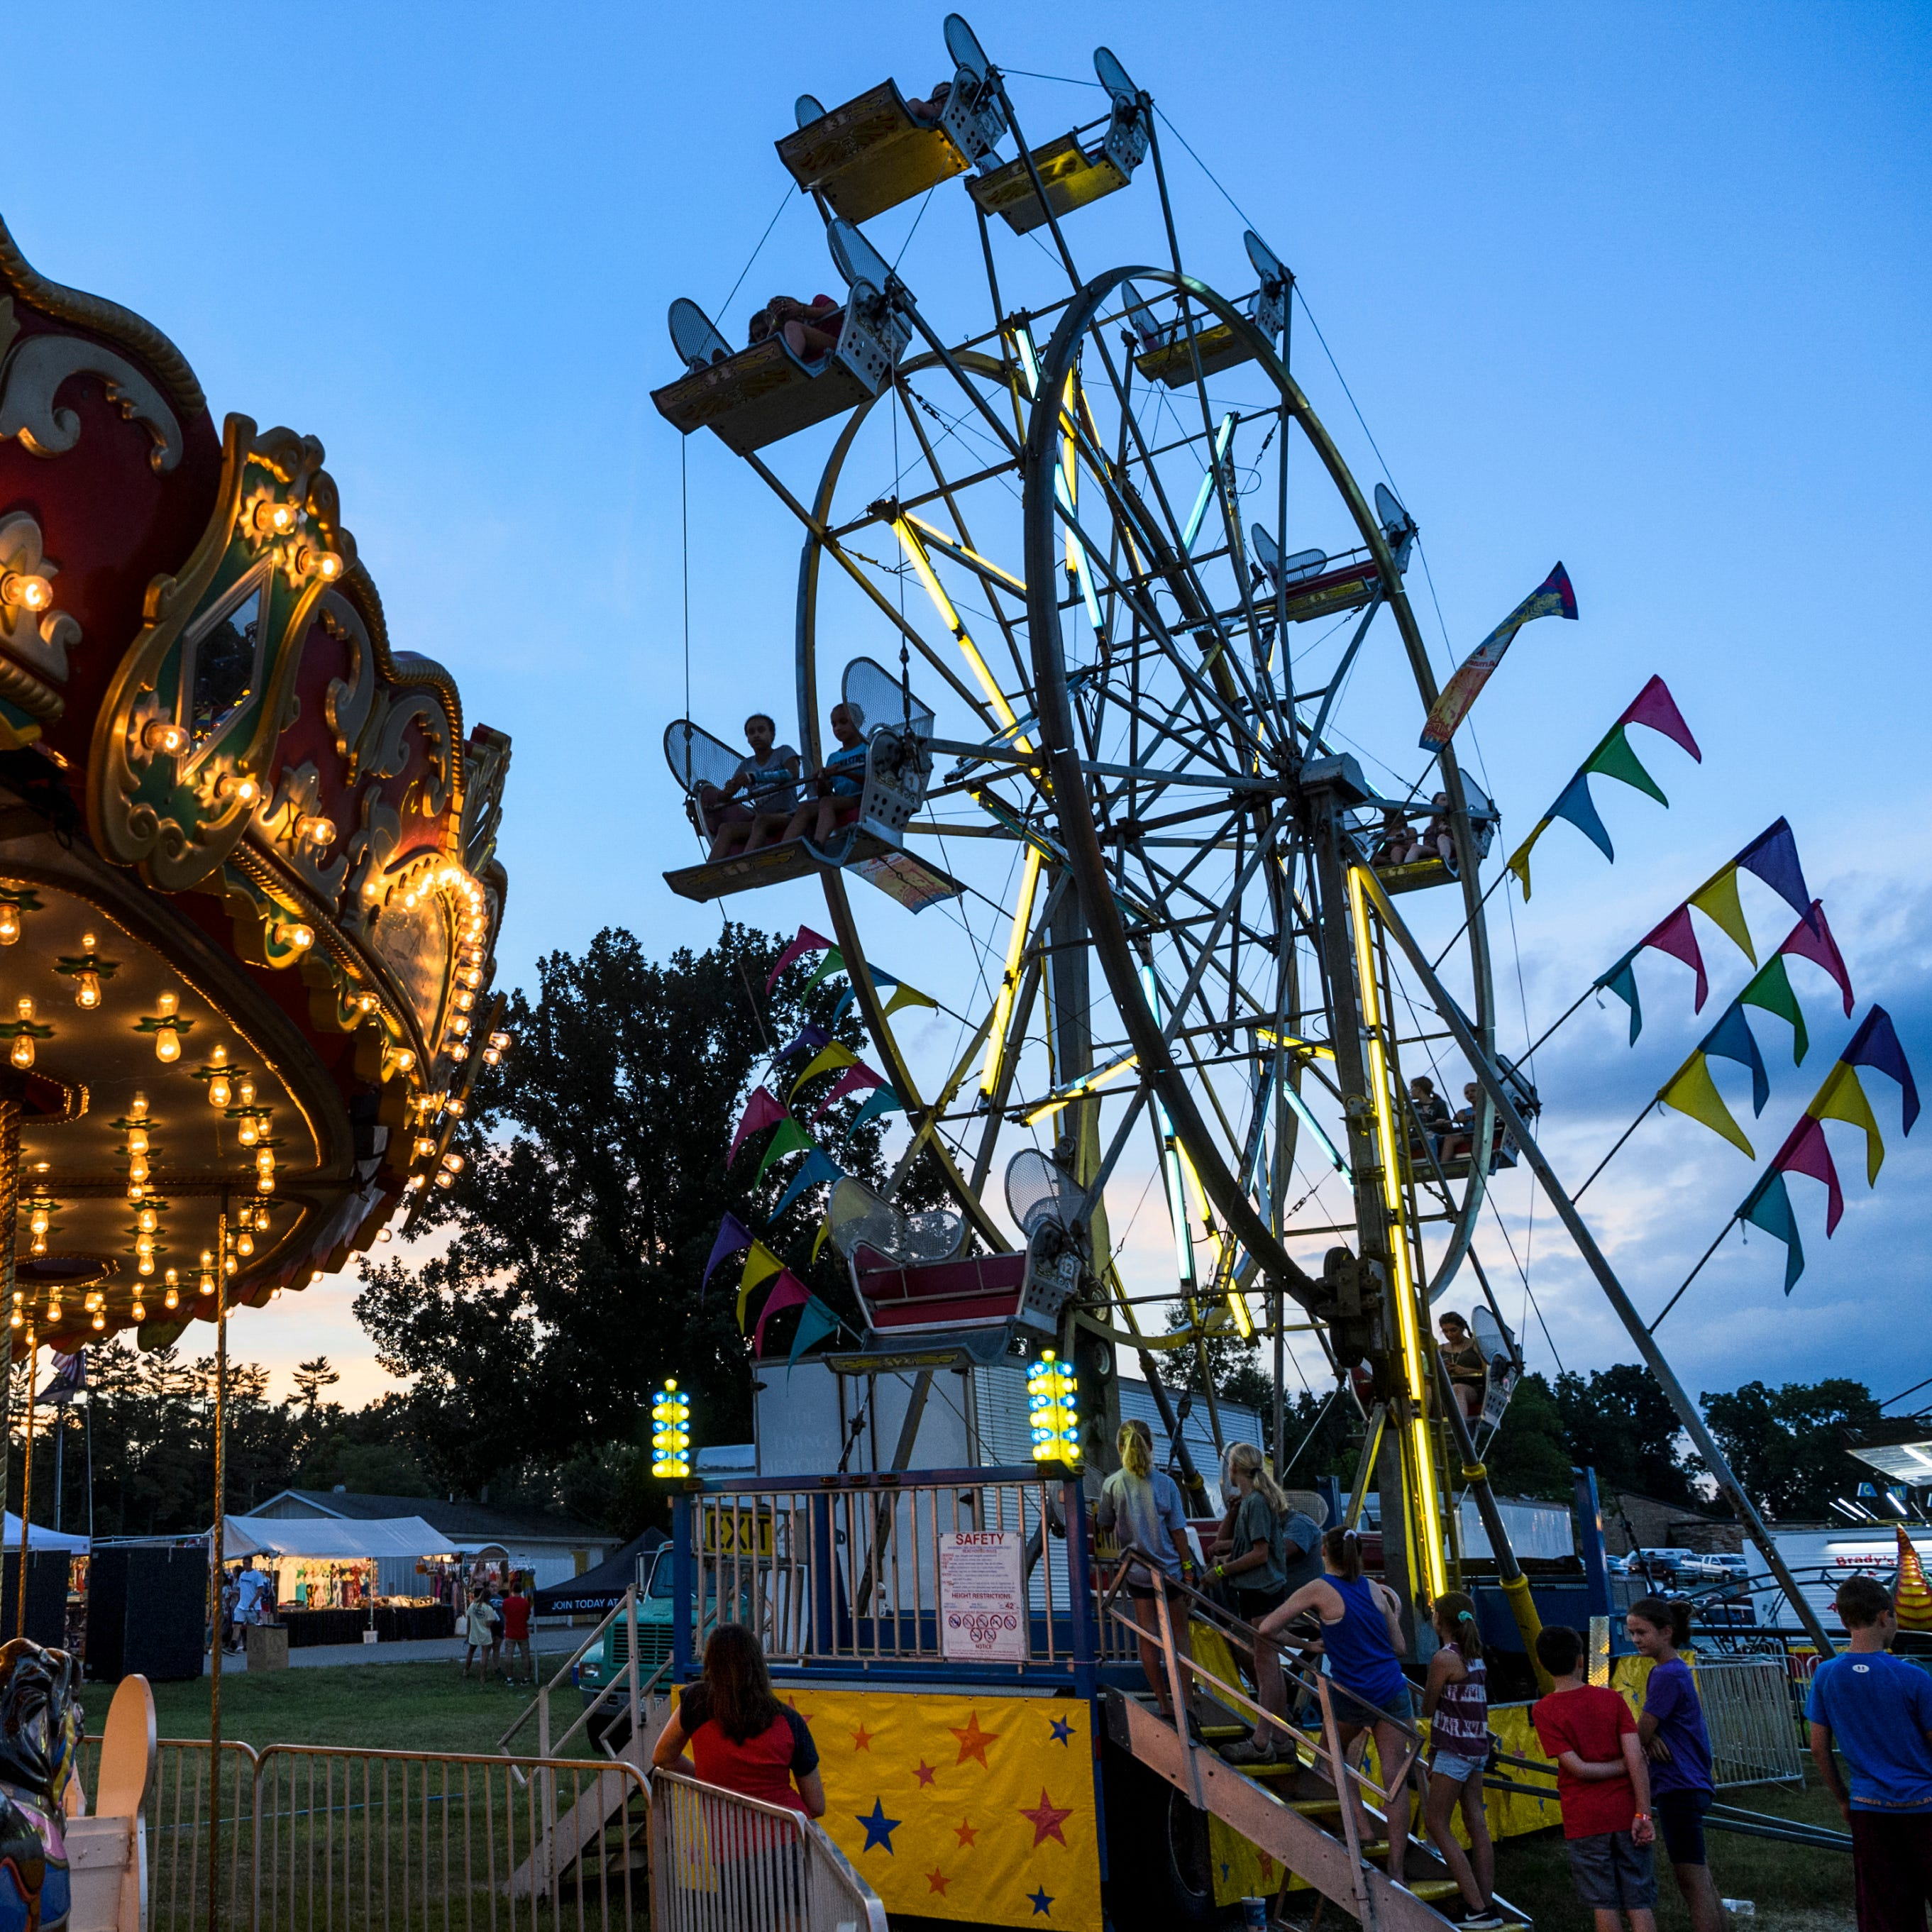 Courier & Press photographer shares a slice of Tri-State county fair season